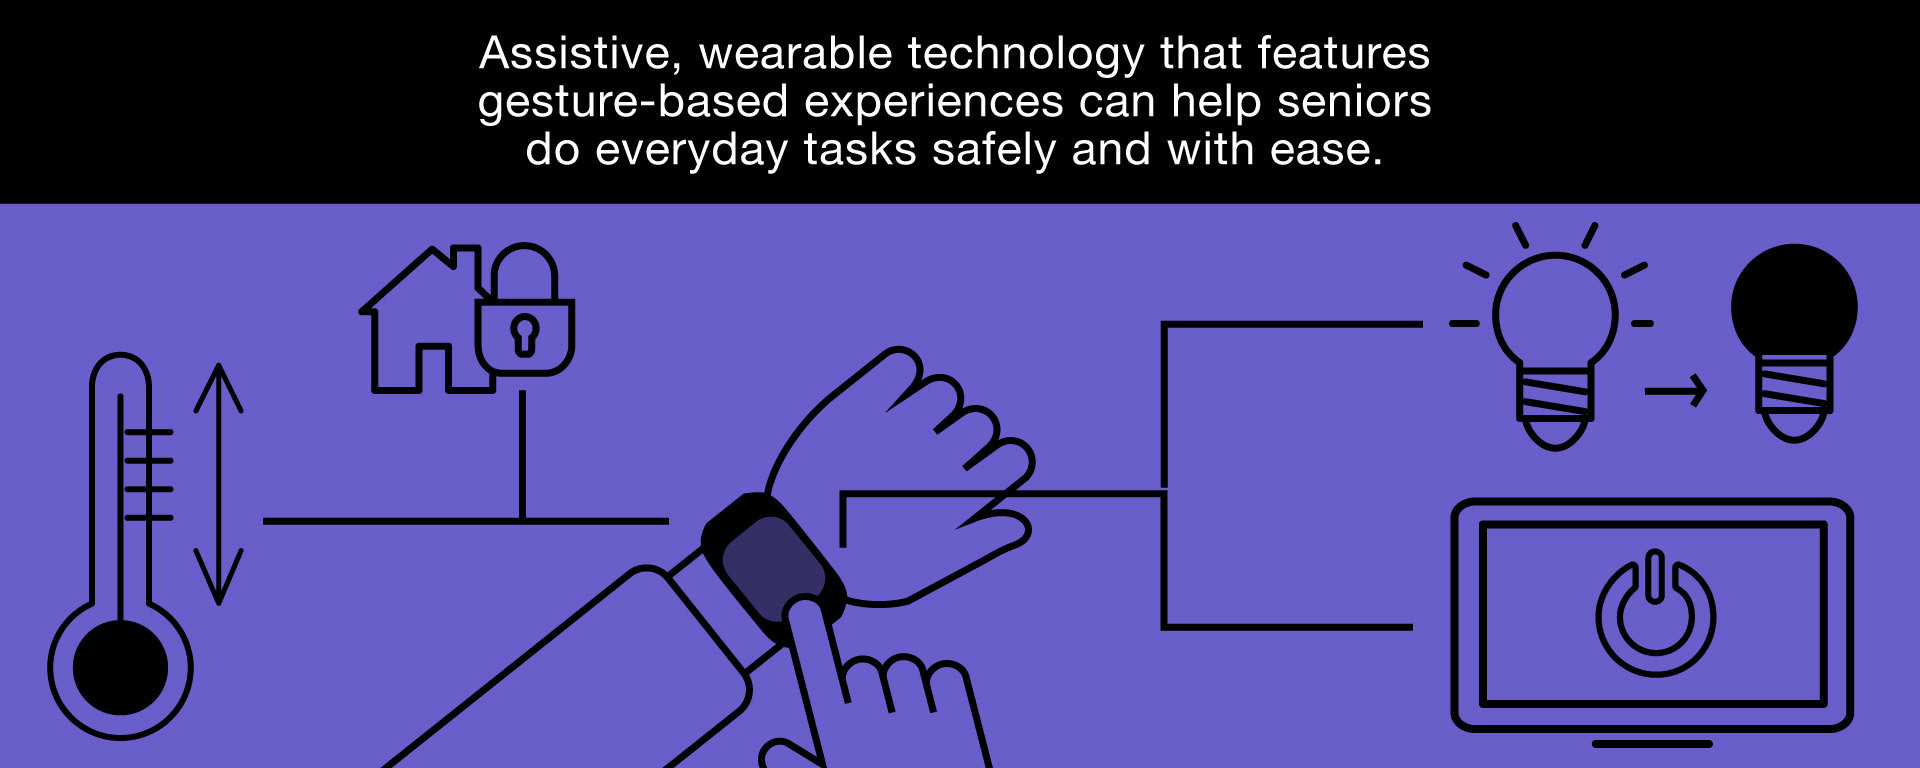 Graphic of Samsung S2 Smartwatch being used as assistive technology